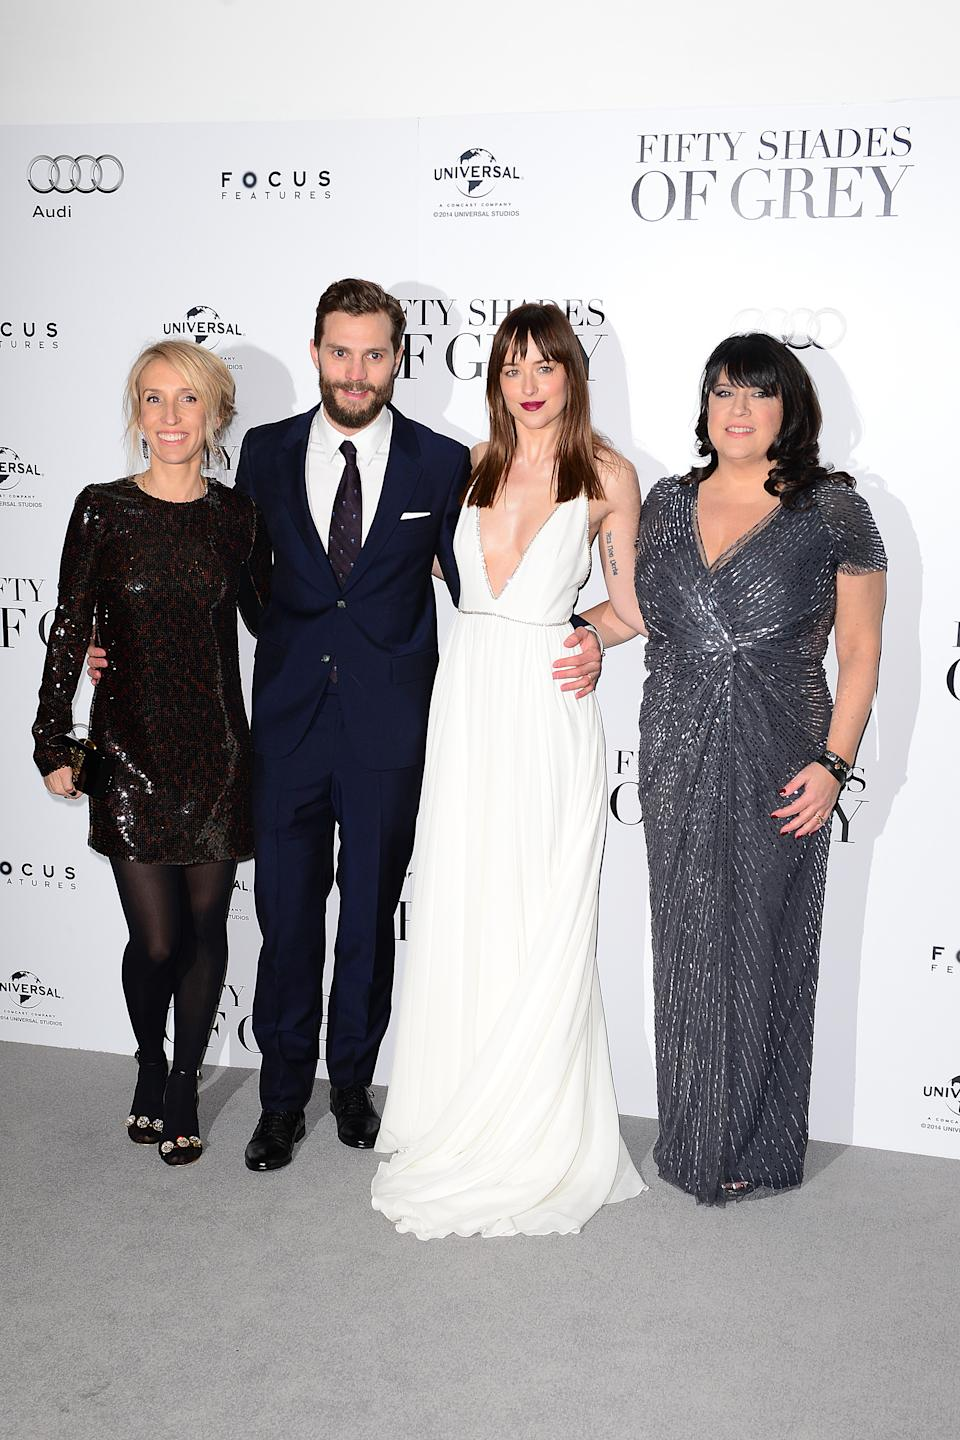 Sam Taylor Johnson, Jamie Dornan, Dakota Johnson and E L James attending the UK premiere of Fifty Shades of Grey at the Odeon Leicester Square, London. PRESS ASSOCIATION Photo. Picture date: Thursday February 12, 2015. See PA story SHOWBIZ Fifty. Photo credit should read: Dominic Lipinski/PA Wire